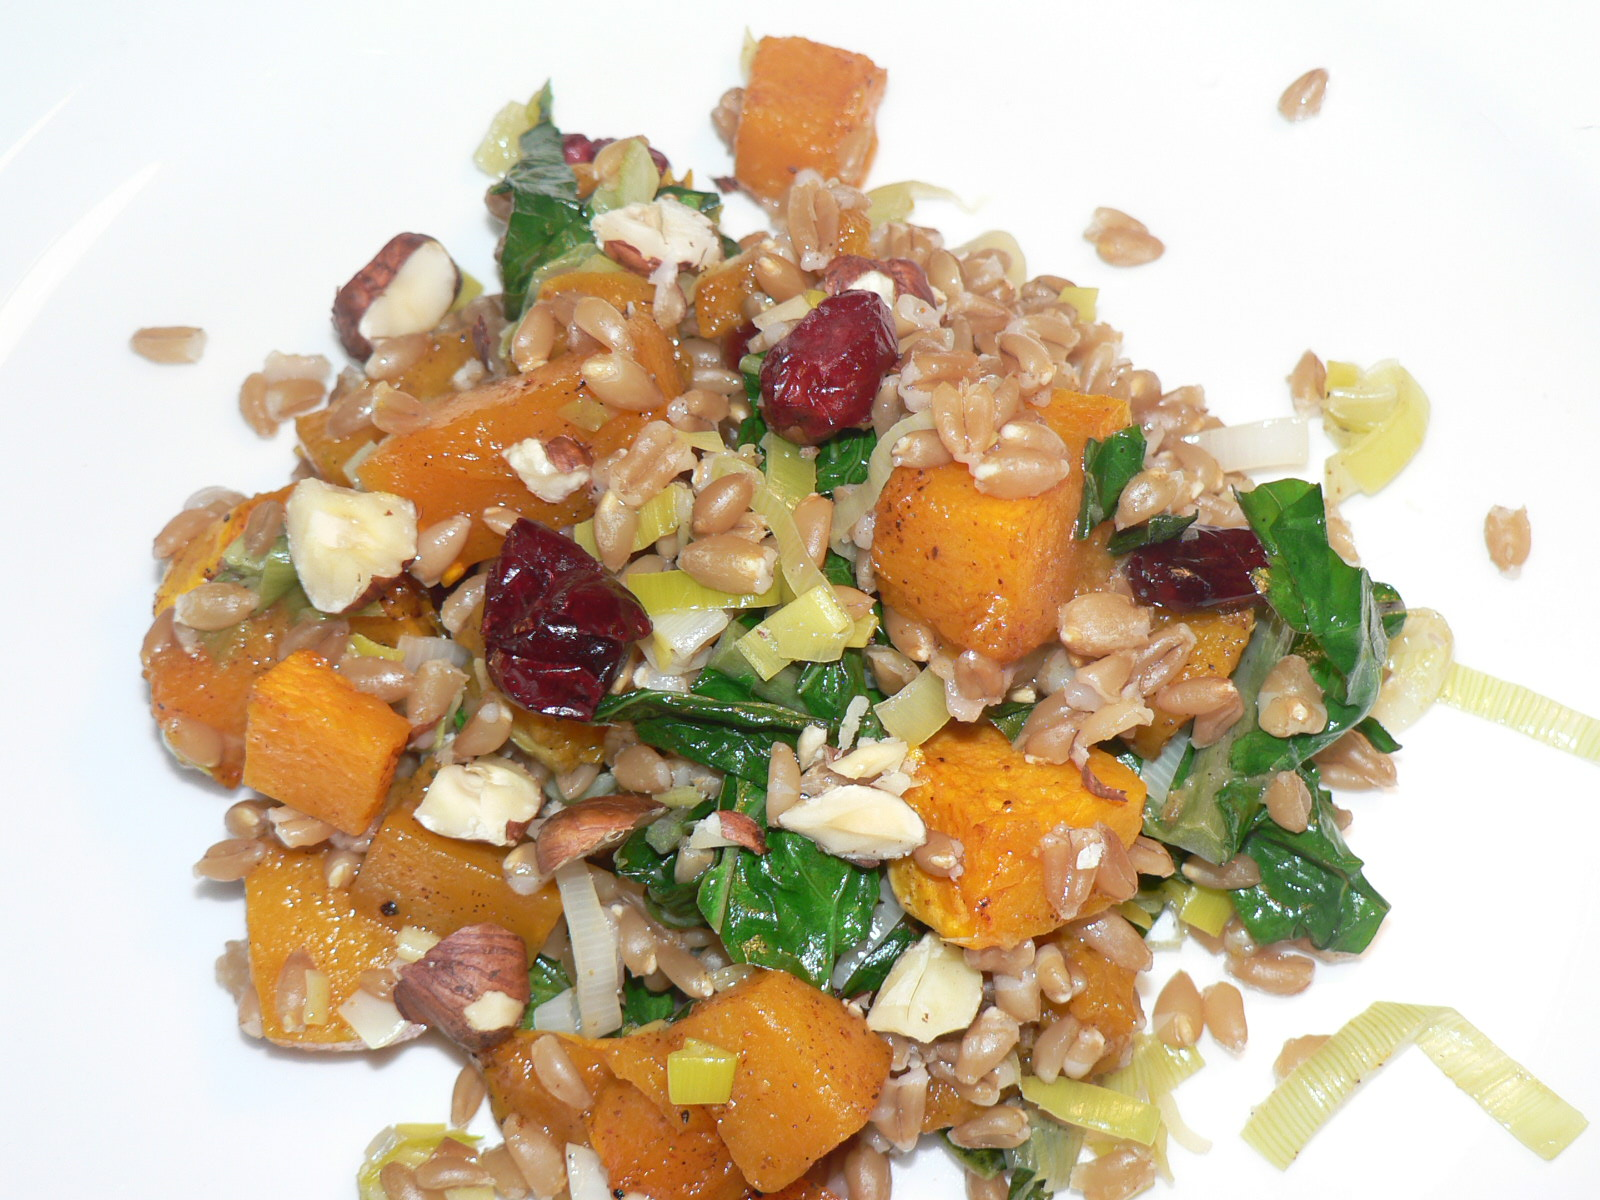 The perfect hearty fall salad, a vegan butternut squash and kale farro salad recipe. Farro is a grain, derived from wheat, it has a fantastic nutty flavor and is the perfect vehicle for fall flavors.